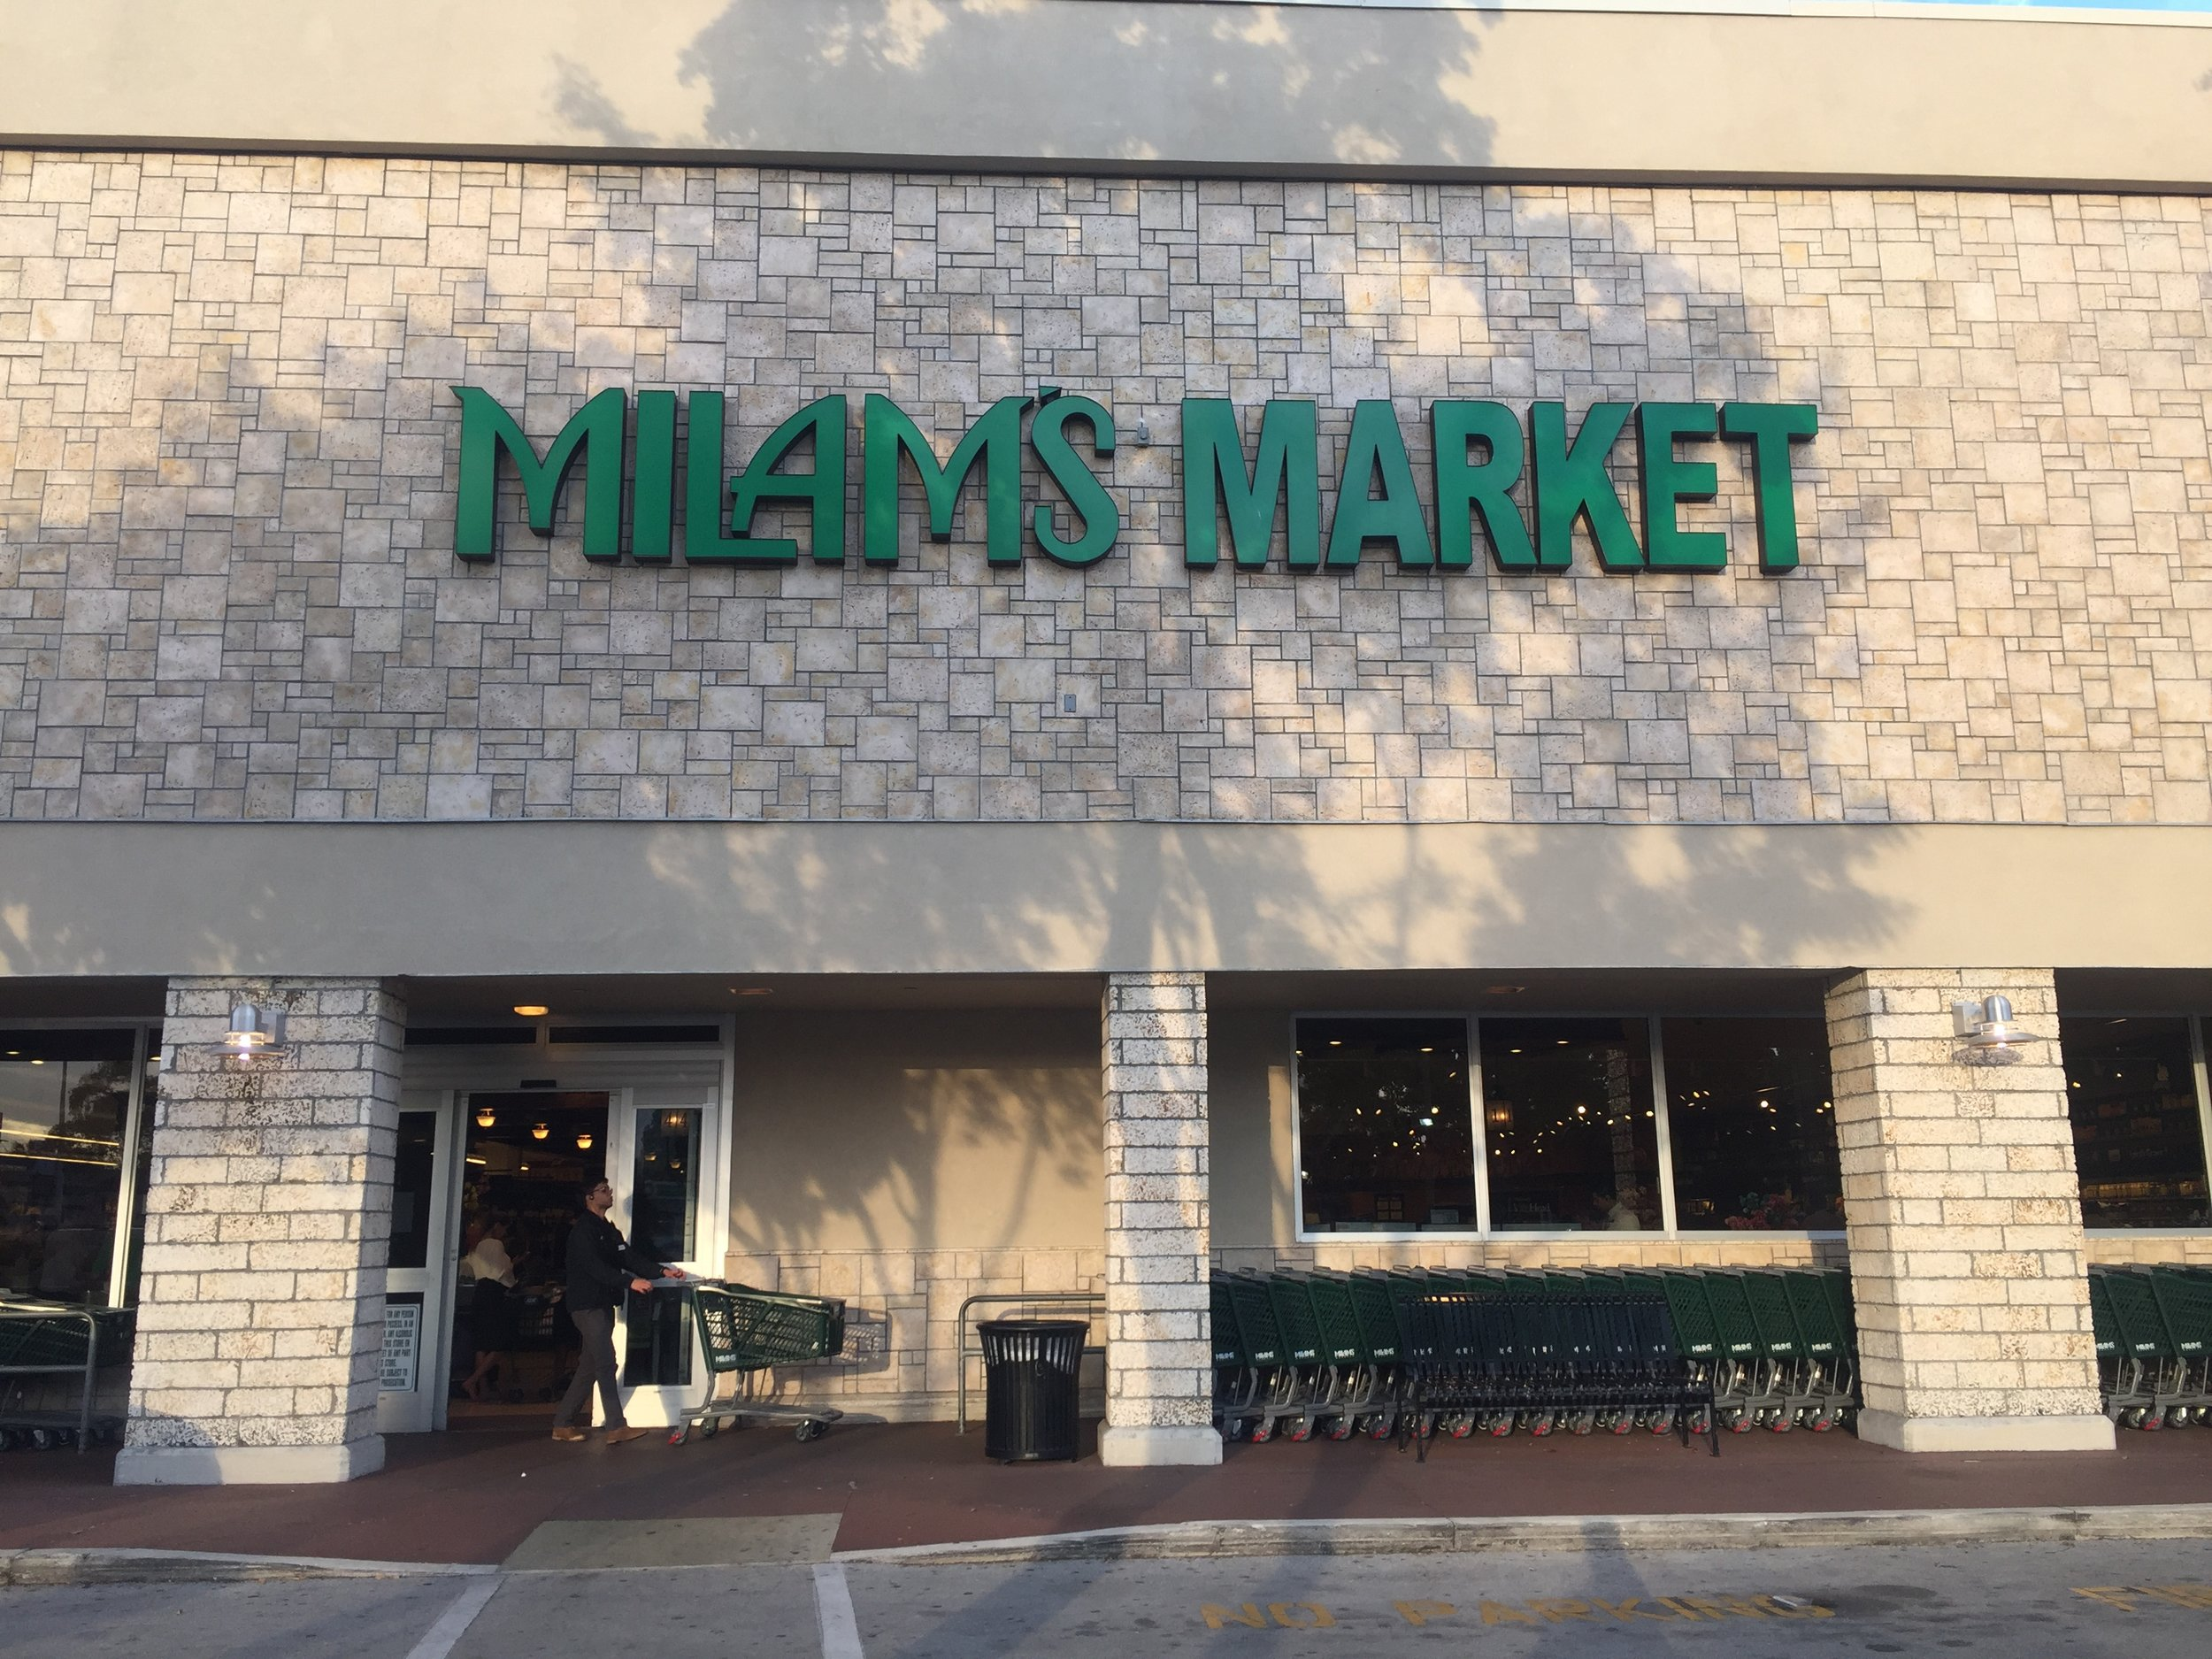 Milam's Market in Miami, Florida